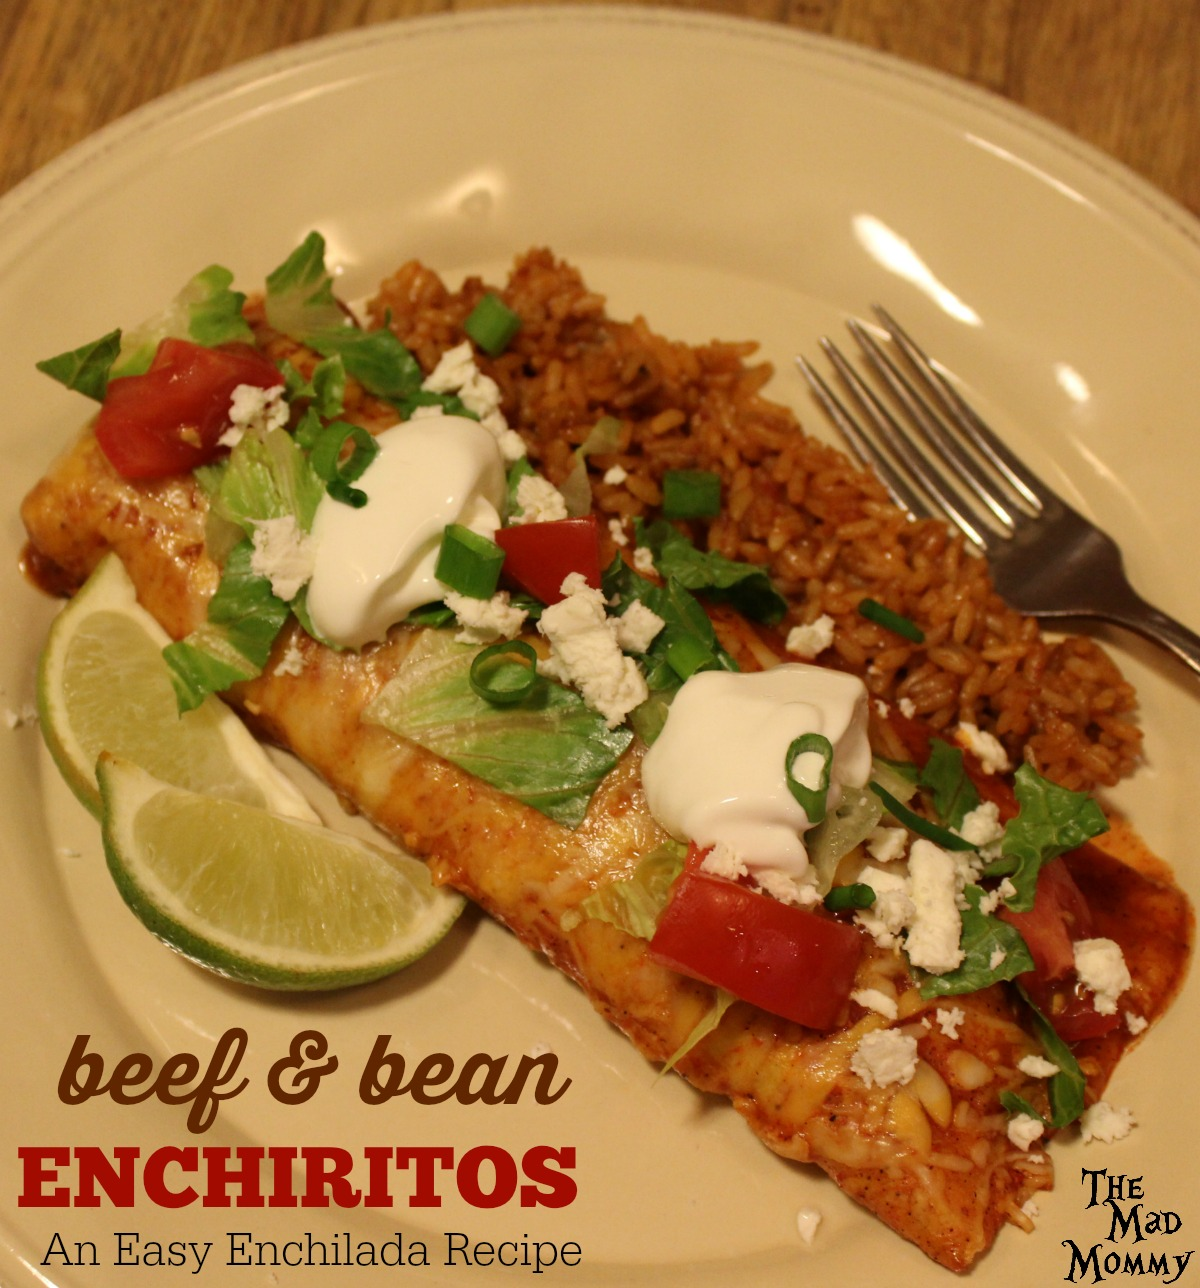 These beef and bean enchiritos are a super delicious version of an easy enchilada recipe made with flour tortillas instead of corn.